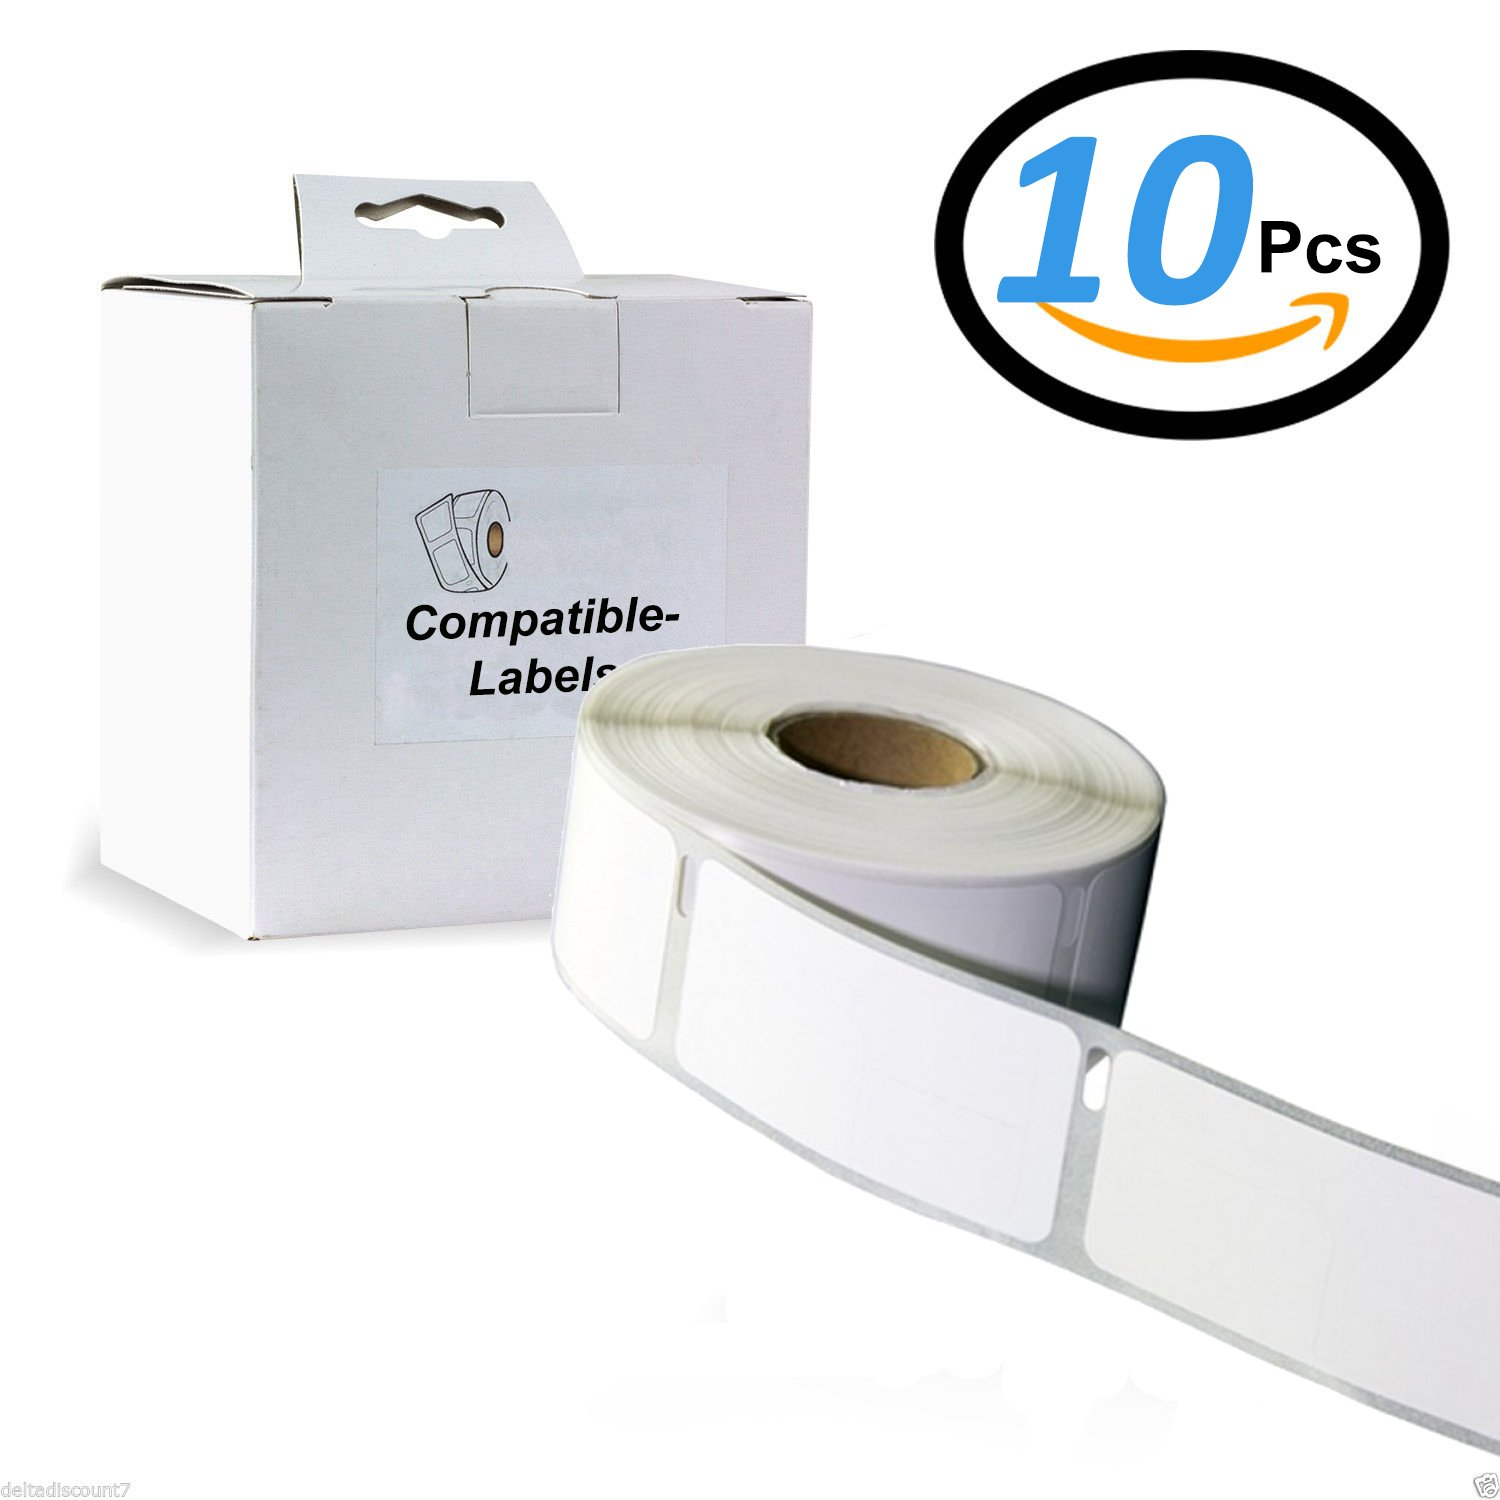 10 X Colour Direct 11354 / S0722540 Address Labels ( 57mm x 32mm ) Compatible With Dymo Label Writer And Seiko Label Printers - 1,000 Labels Per Roll 10x11354